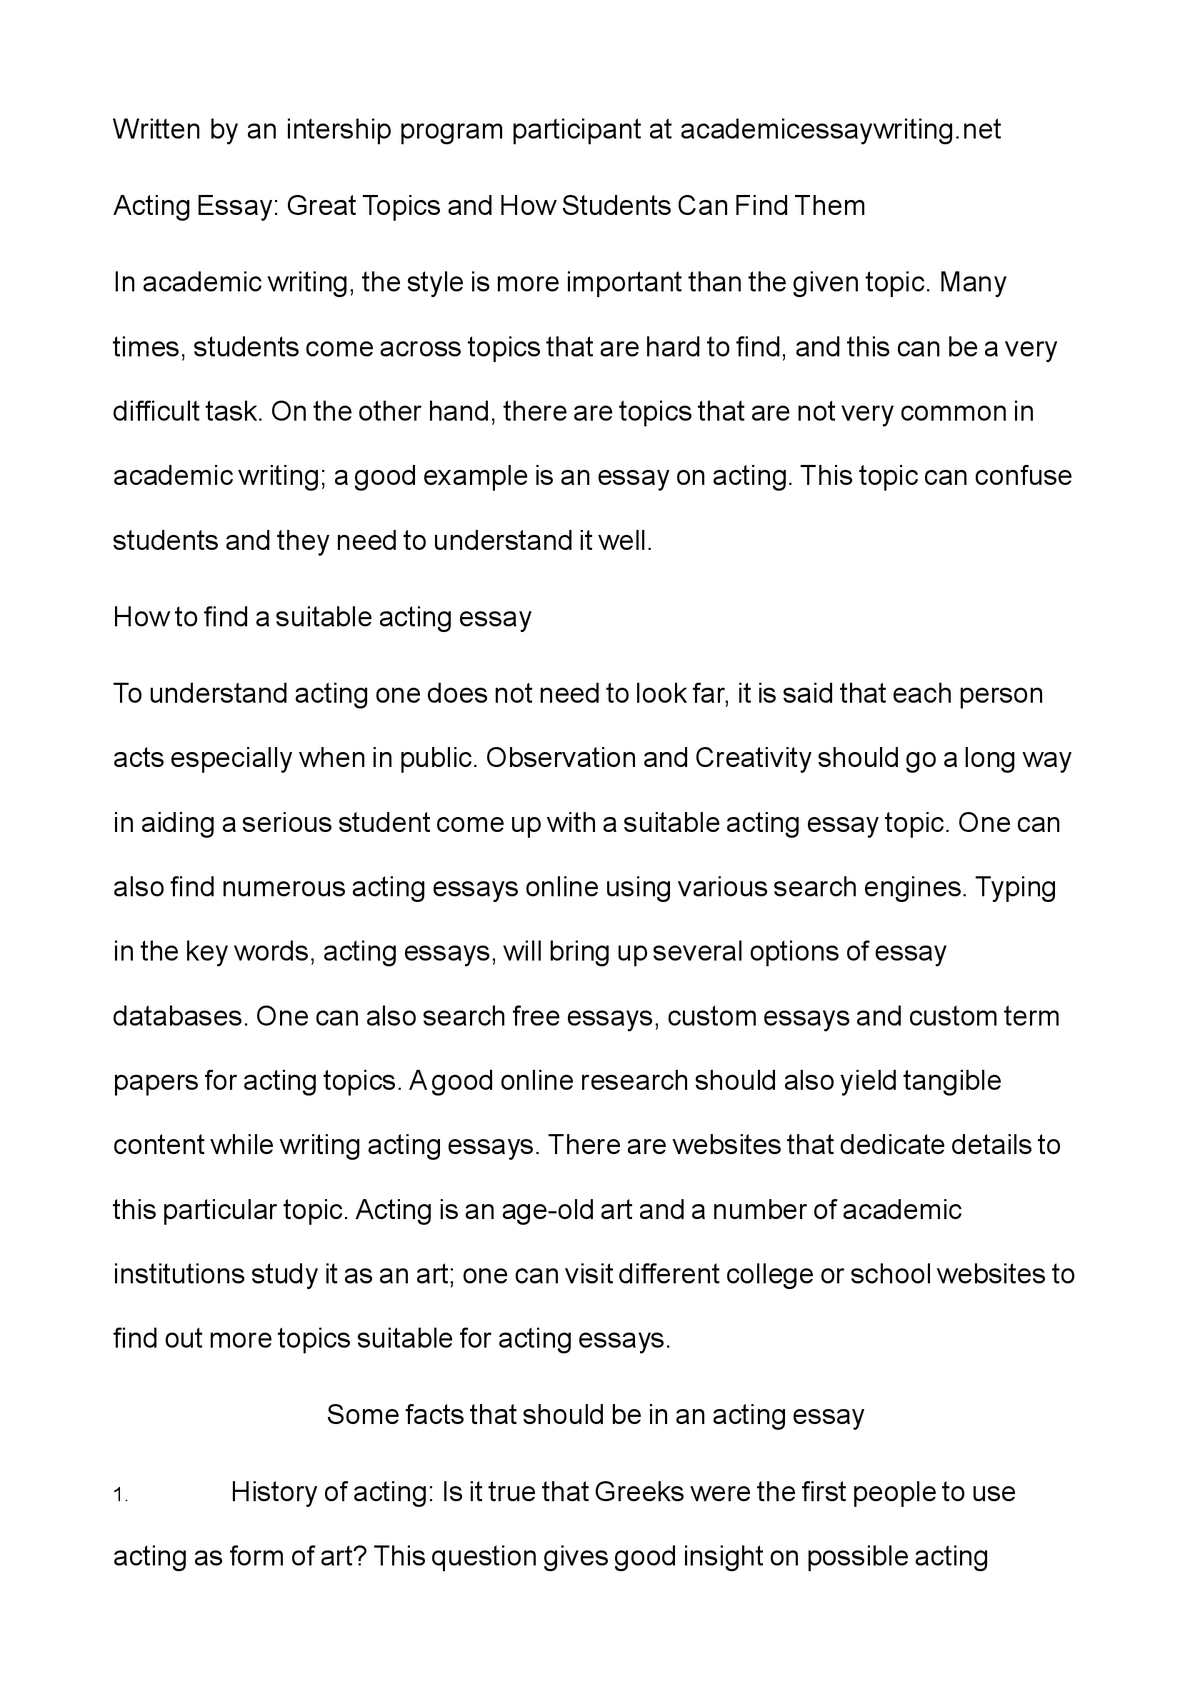 Essay On Healthy Eating  Essay On Global Warming In English also High School Essay Sample Calamo  Acting Essay Great Topics And How Students Can Find Them Essay Thesis Statement Example